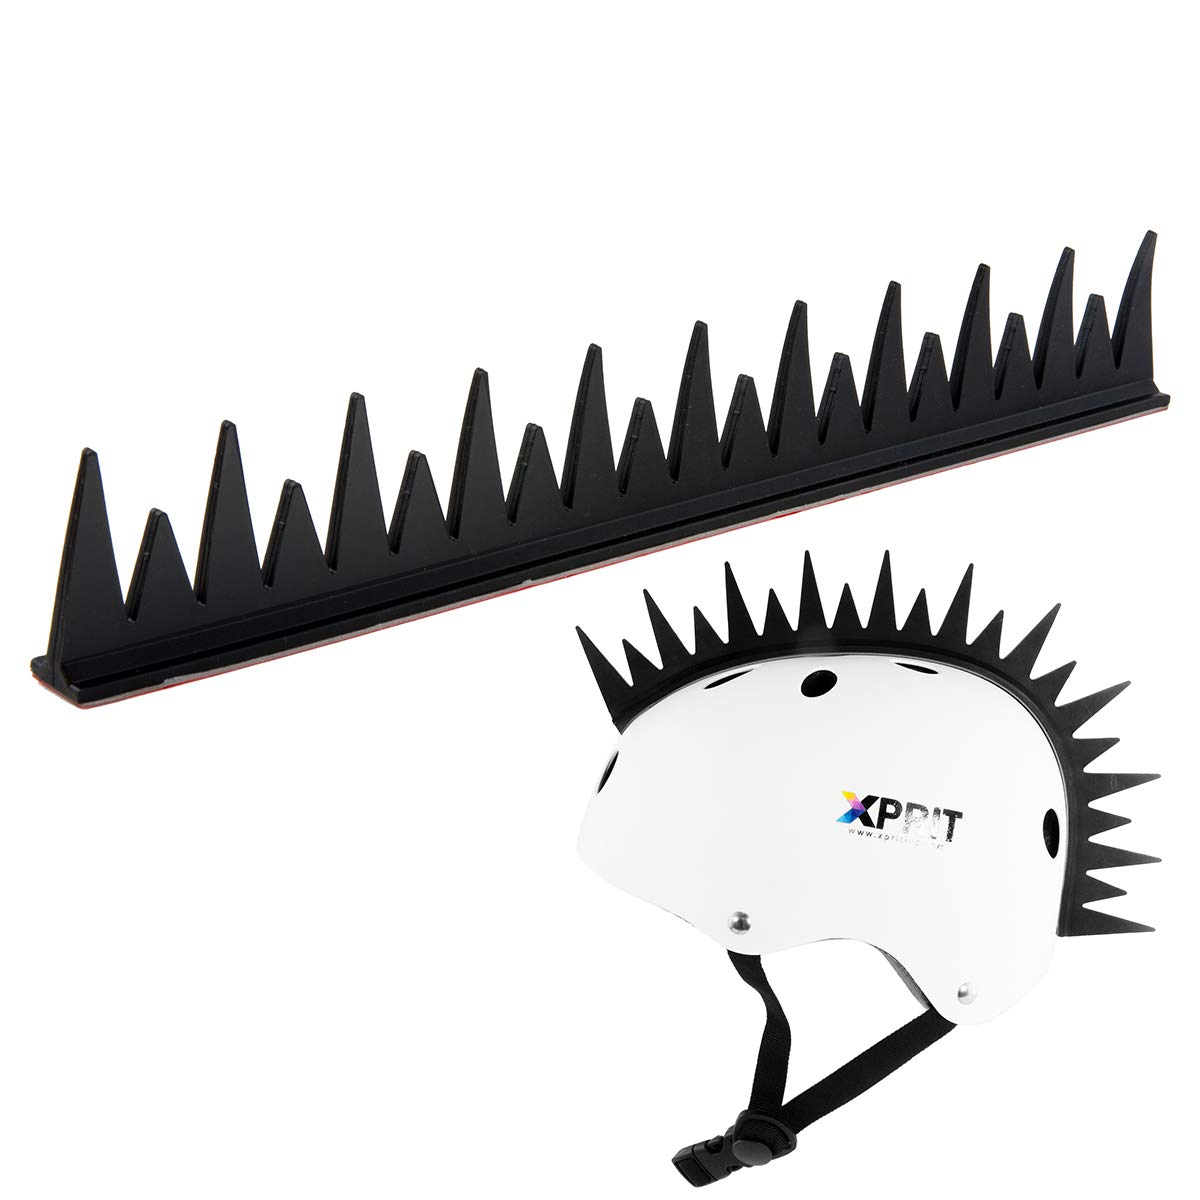 Motorcycle Cycling Warhawk Wig Accessory Adhesive//Stick On Helmet for Skateboarding Dirt-Bikes XPRIT Mohawk